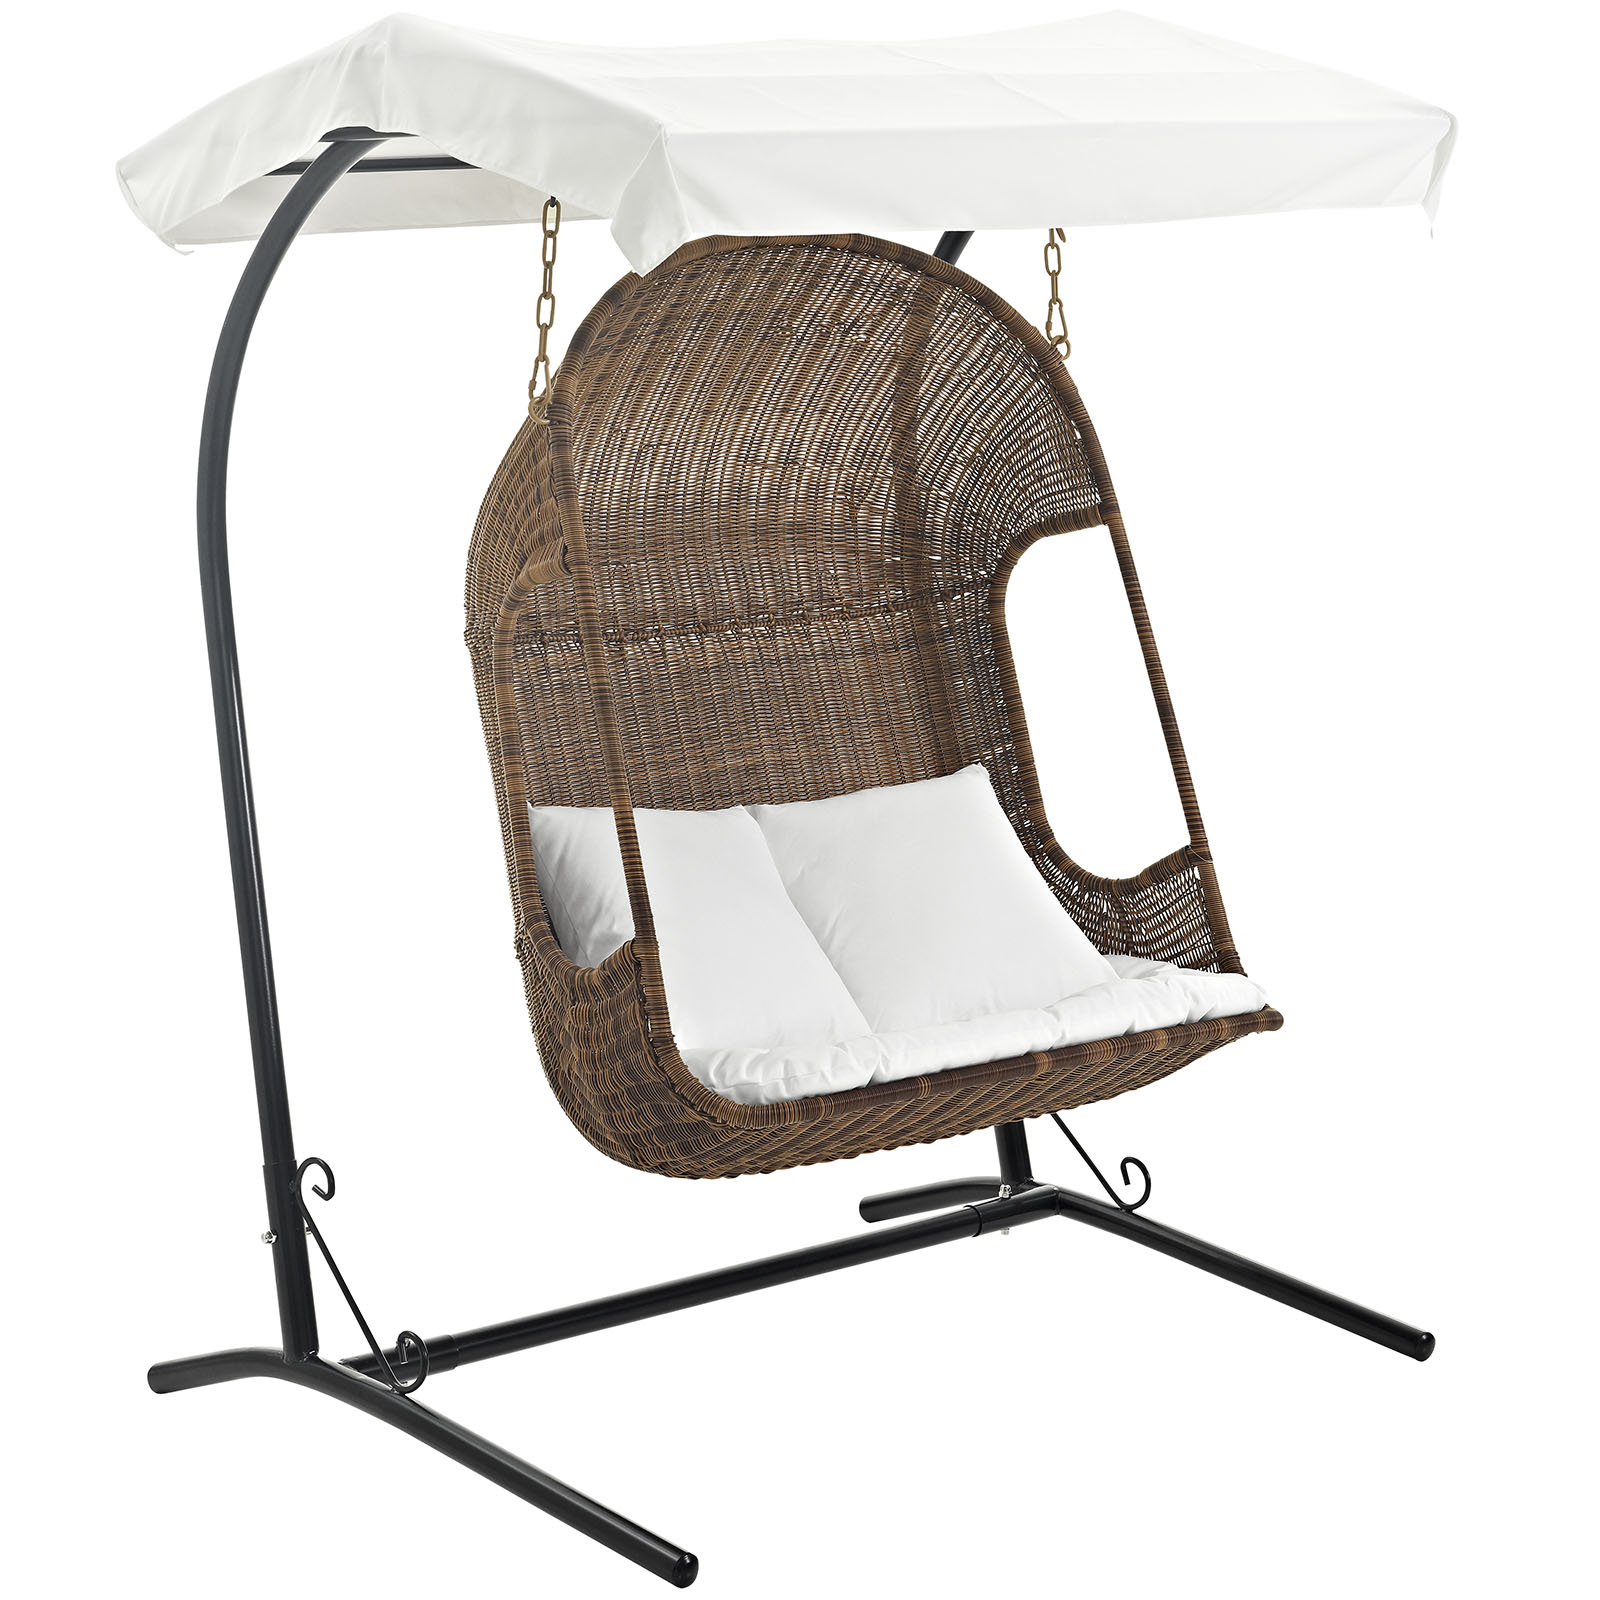 Vantage Outdoor Patio Swing Chair With Stand Brown White